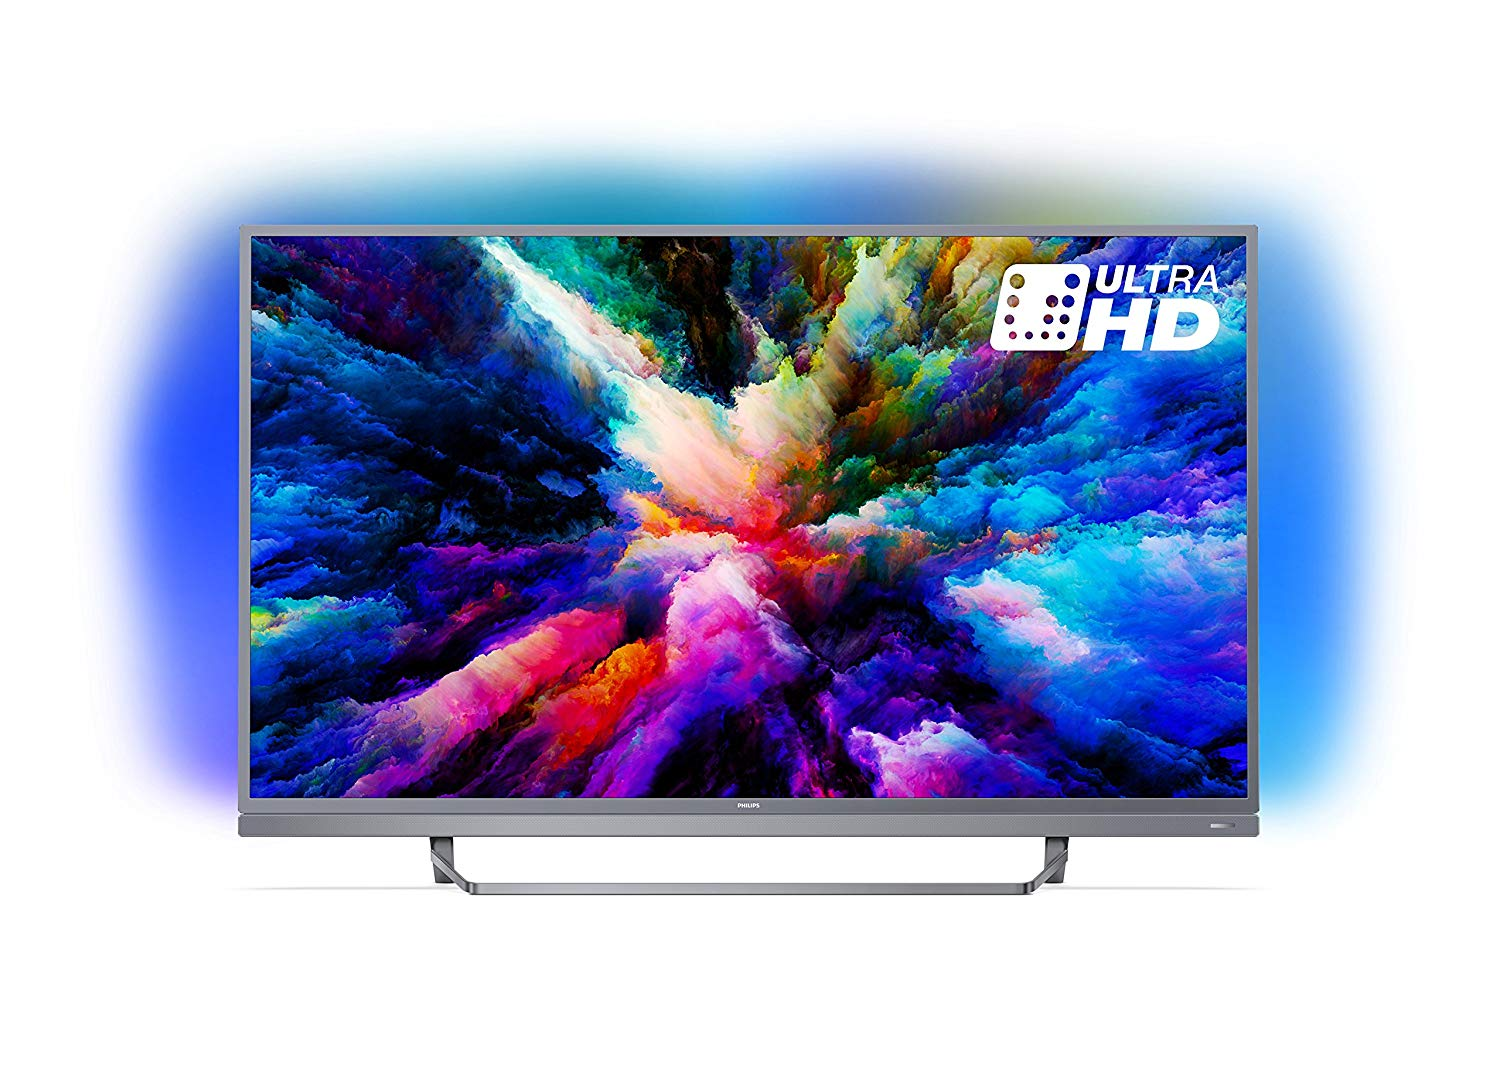 Deal of the Day: Philips 49PUS7503/12 49-Inch 4K Ultra HD Android Smart TV